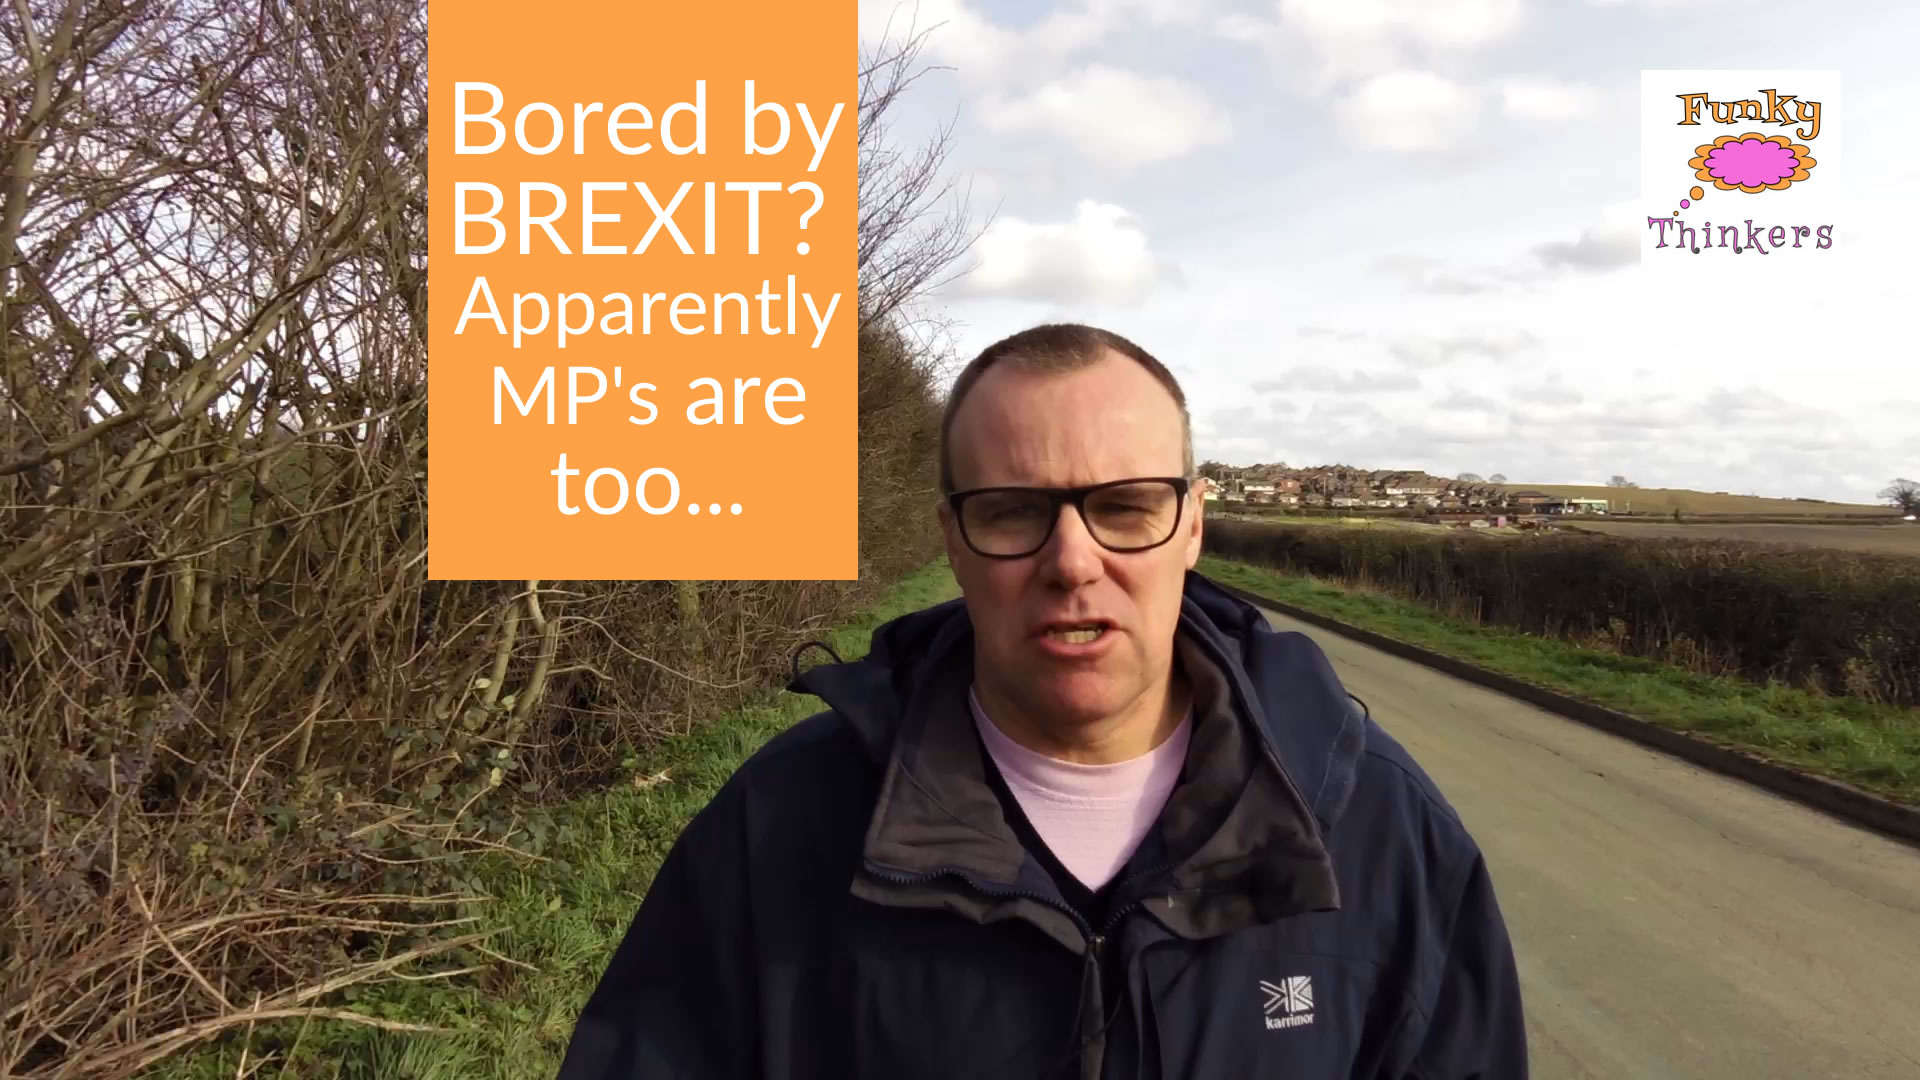 bored by brexit